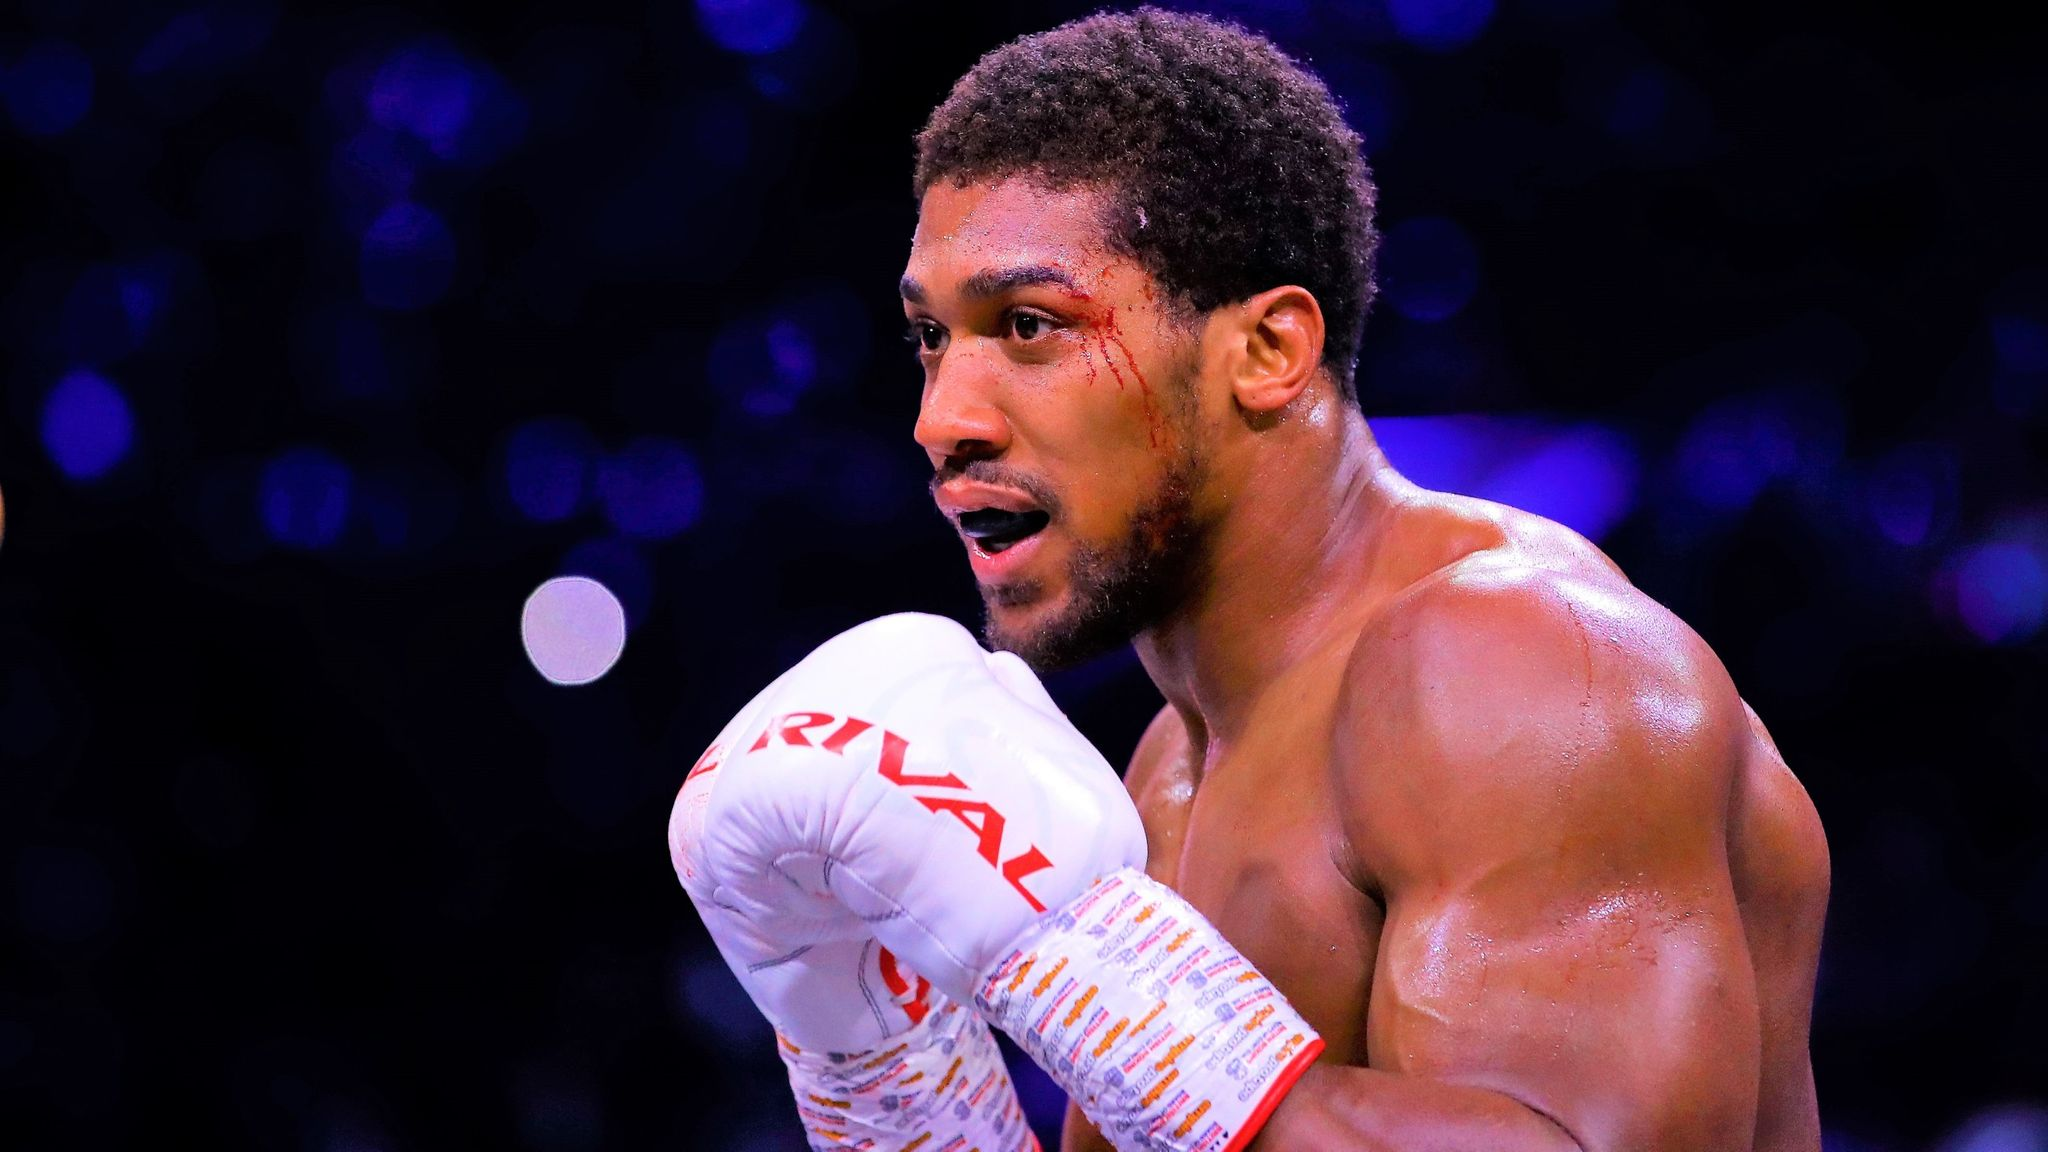 Anthony Joshua Net worth, Biography, Family, Education, and Career